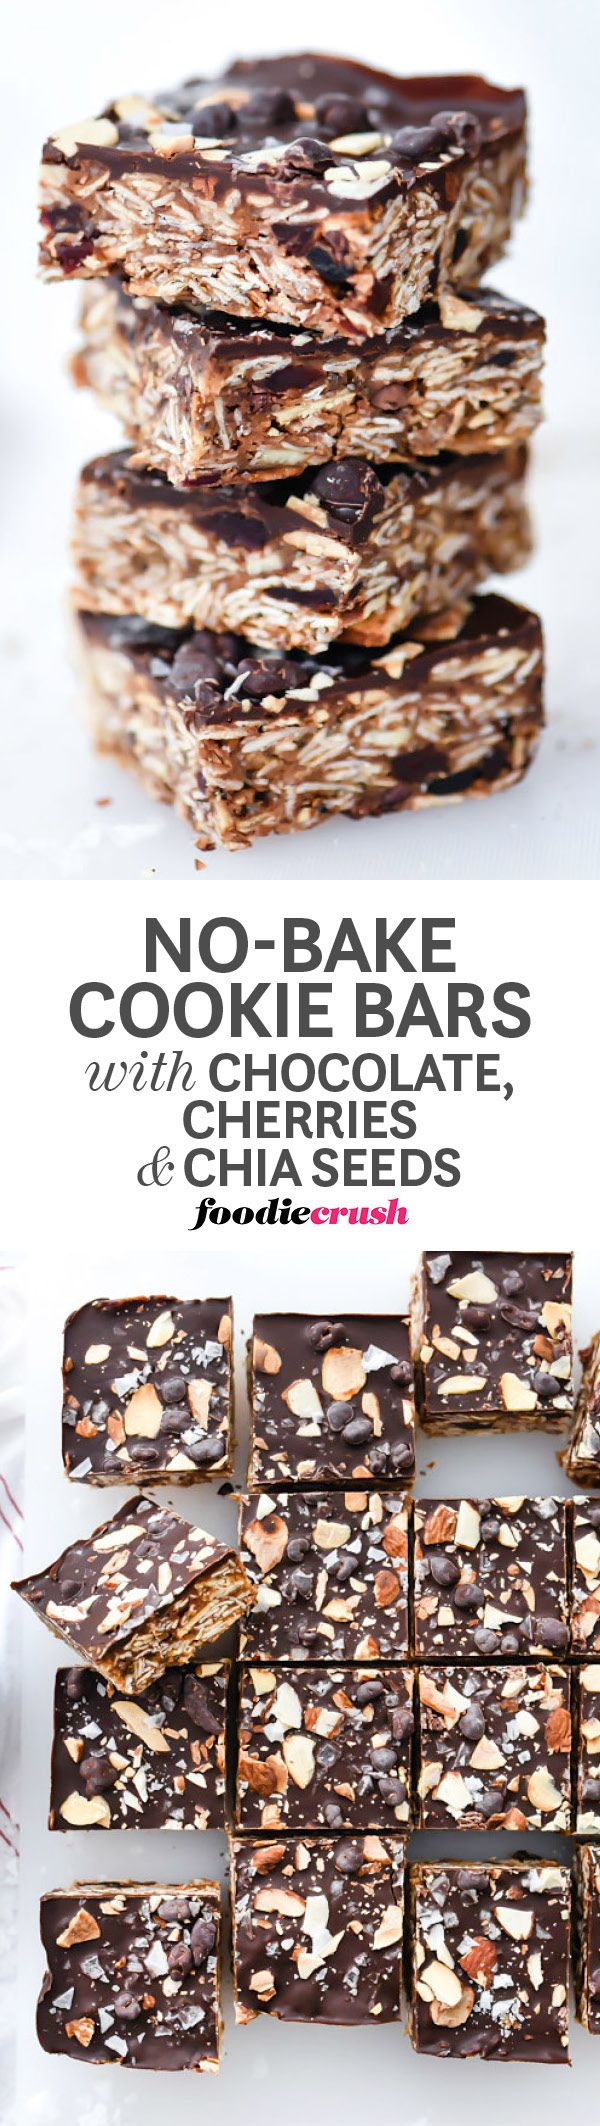 These no-bake bars are packed with healthy ingredients and just the right amount of chocolate decadence to make a treat worthy of breakfast, snack-time or dessert | foodiecrush.com #dessert #healthy #oats #chocolate #nobake